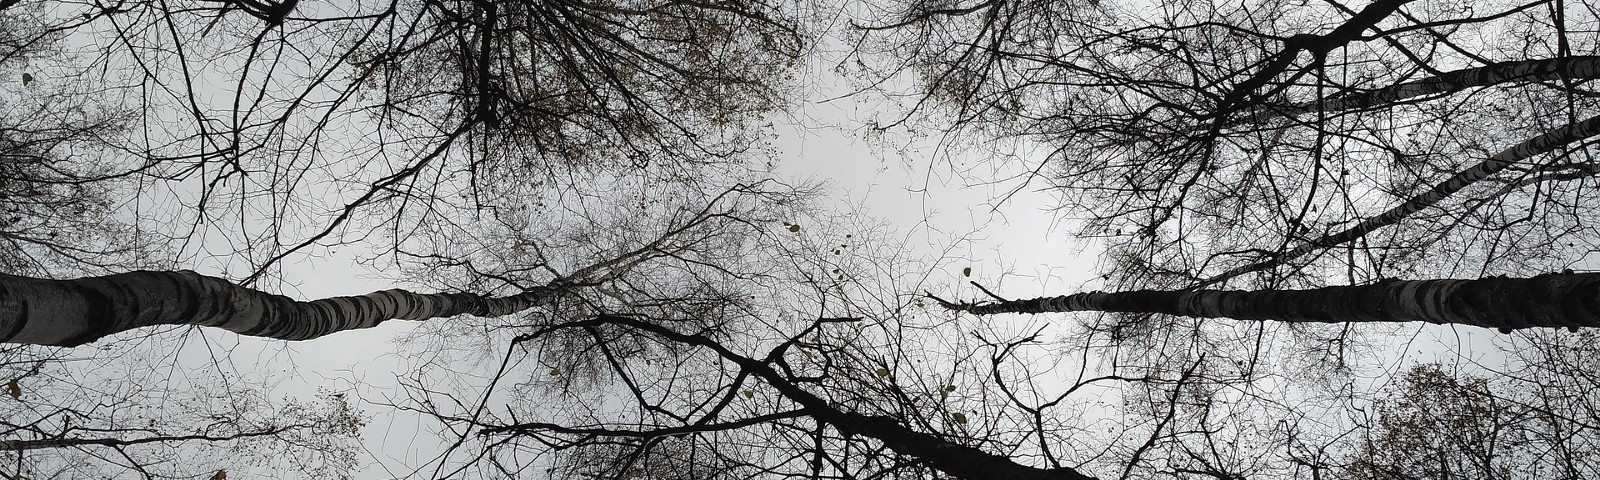 Trees without leaves and a gray sky